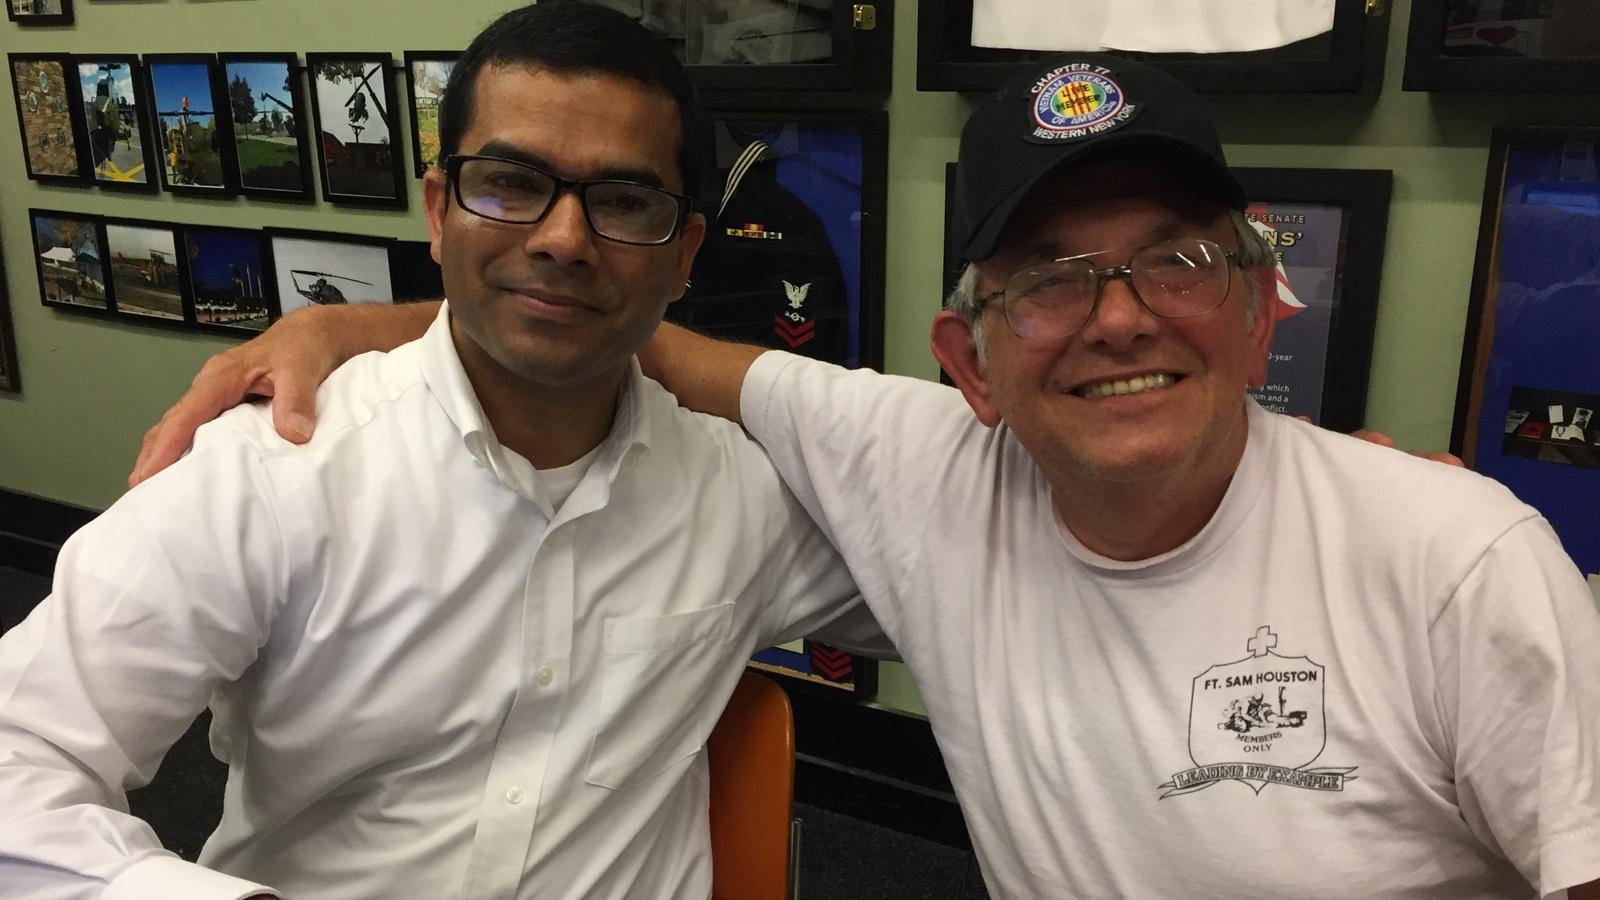 Thomas Chacko and Vietnam Veteran Joe Pasek pause for a photo op at the local VVA chapter headquarters.